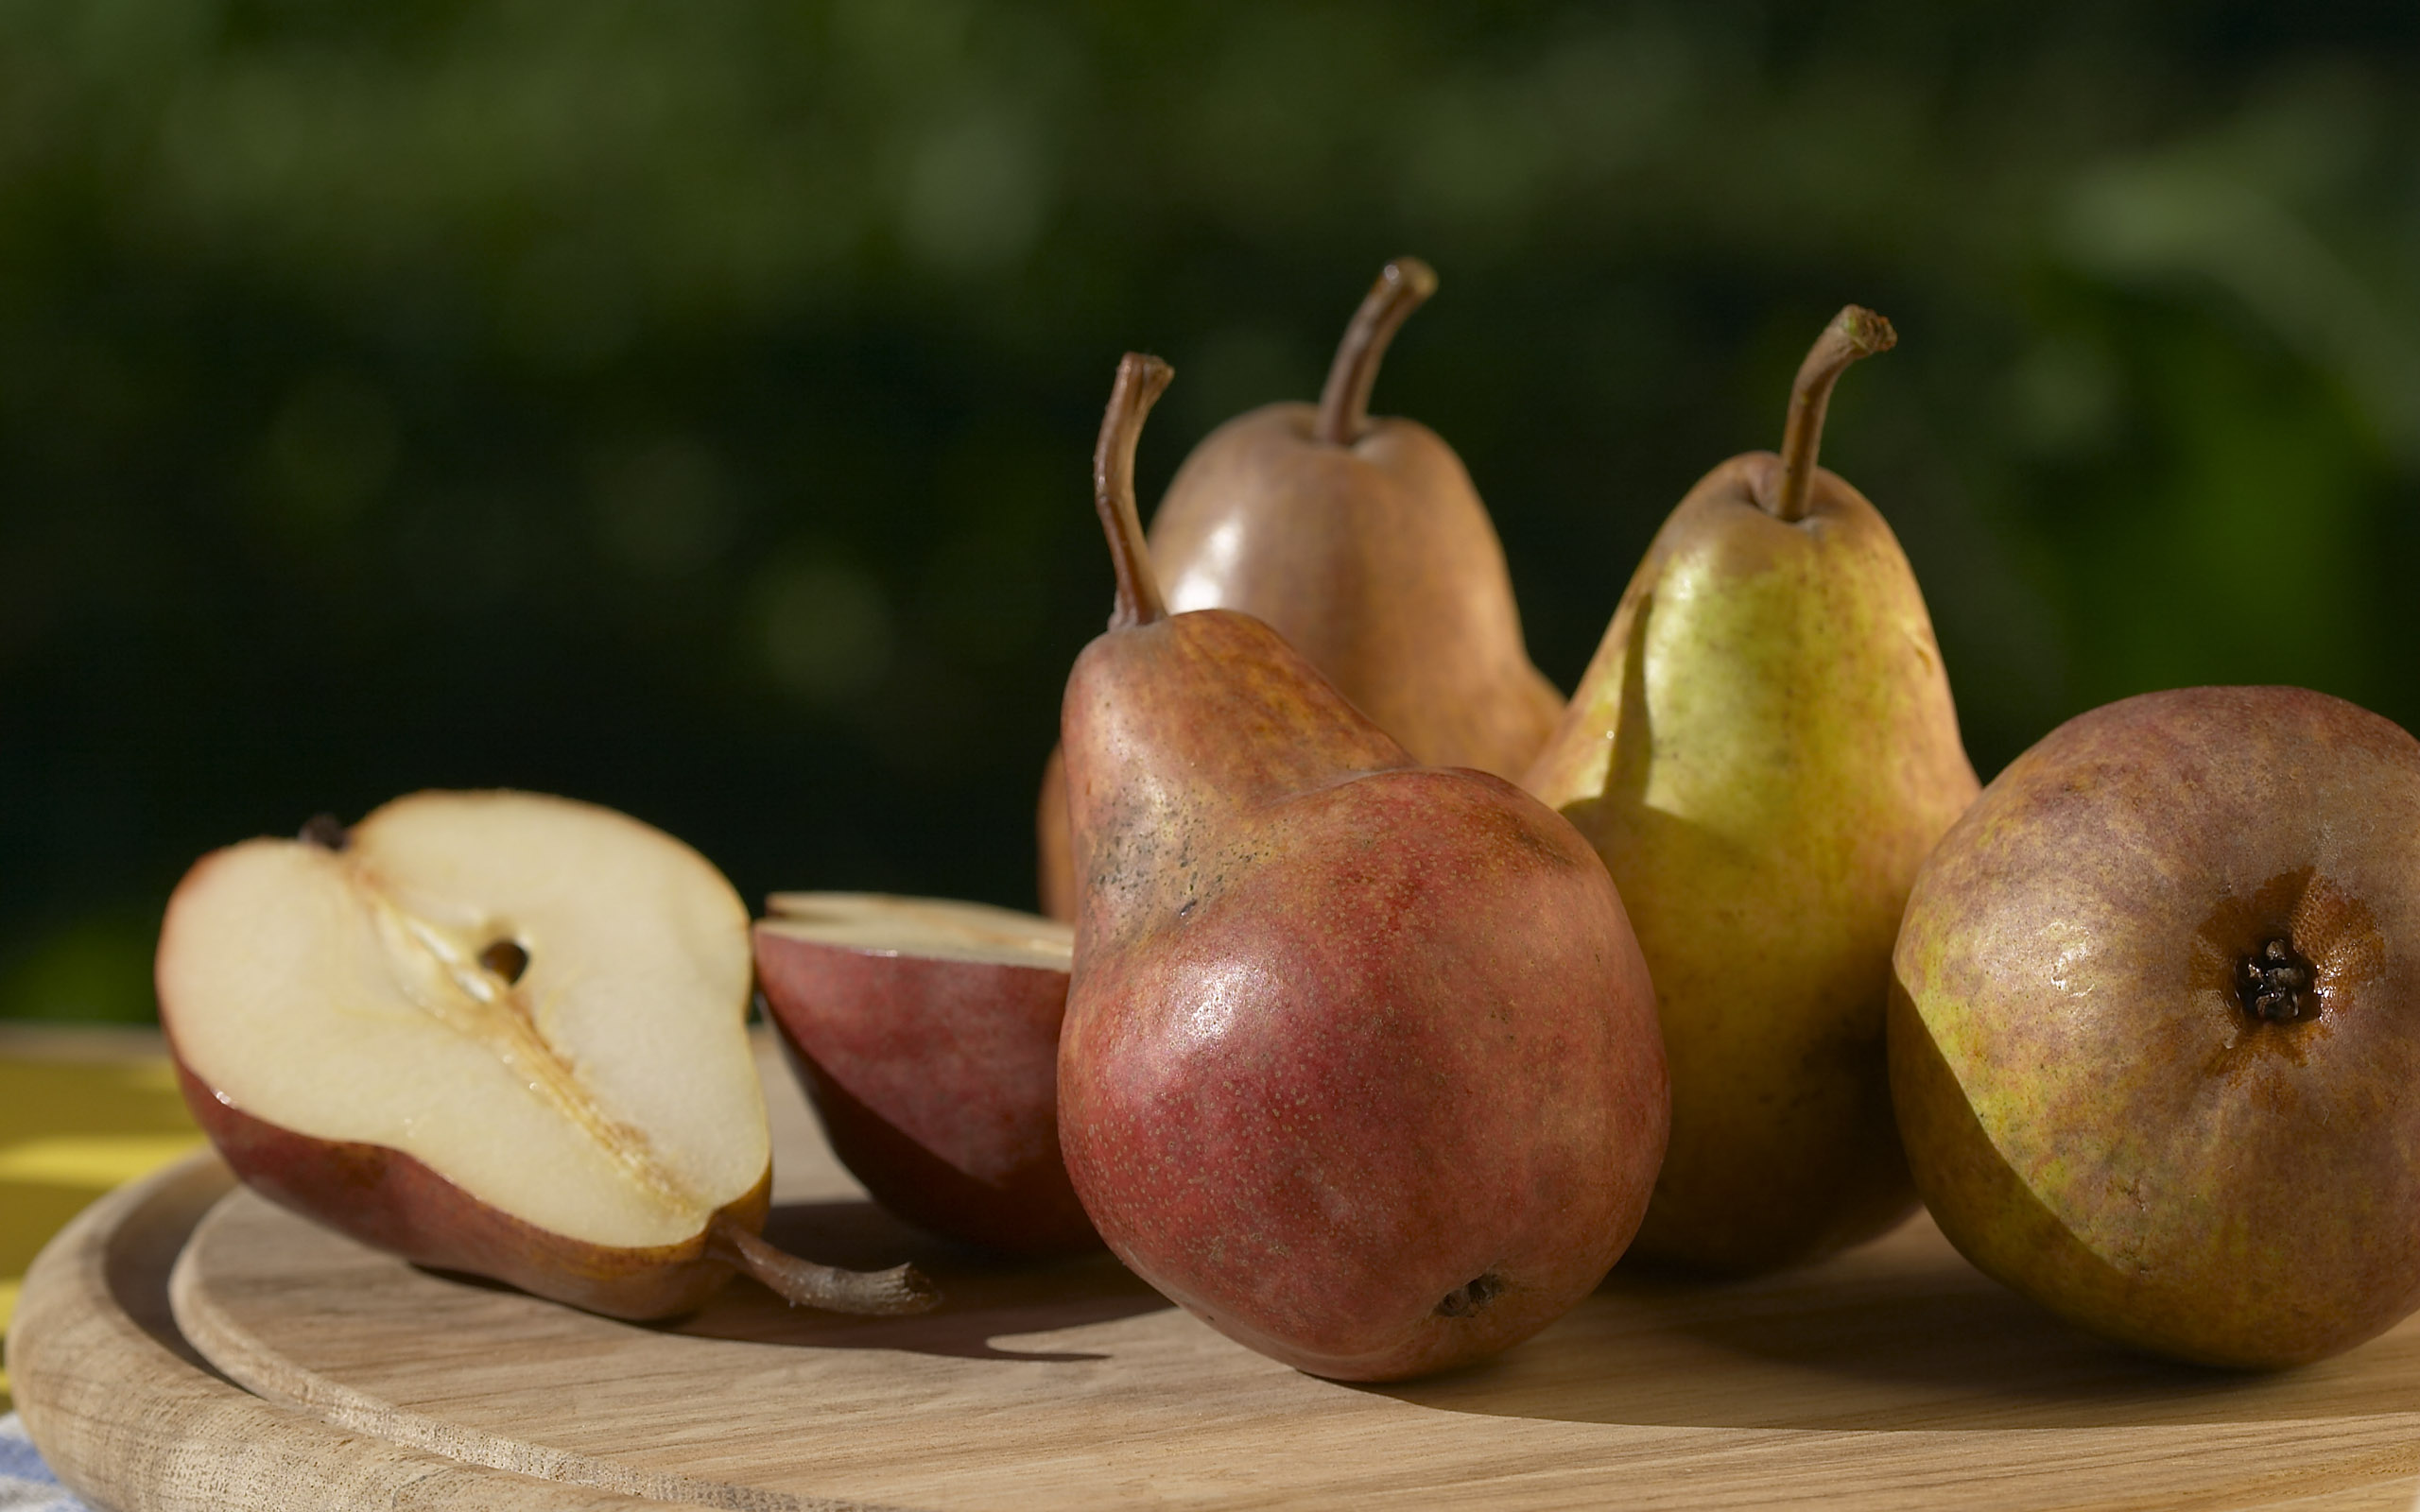 Variety of pears pictures Bradford Pear Tree Semen Sex Smell - Business Insider